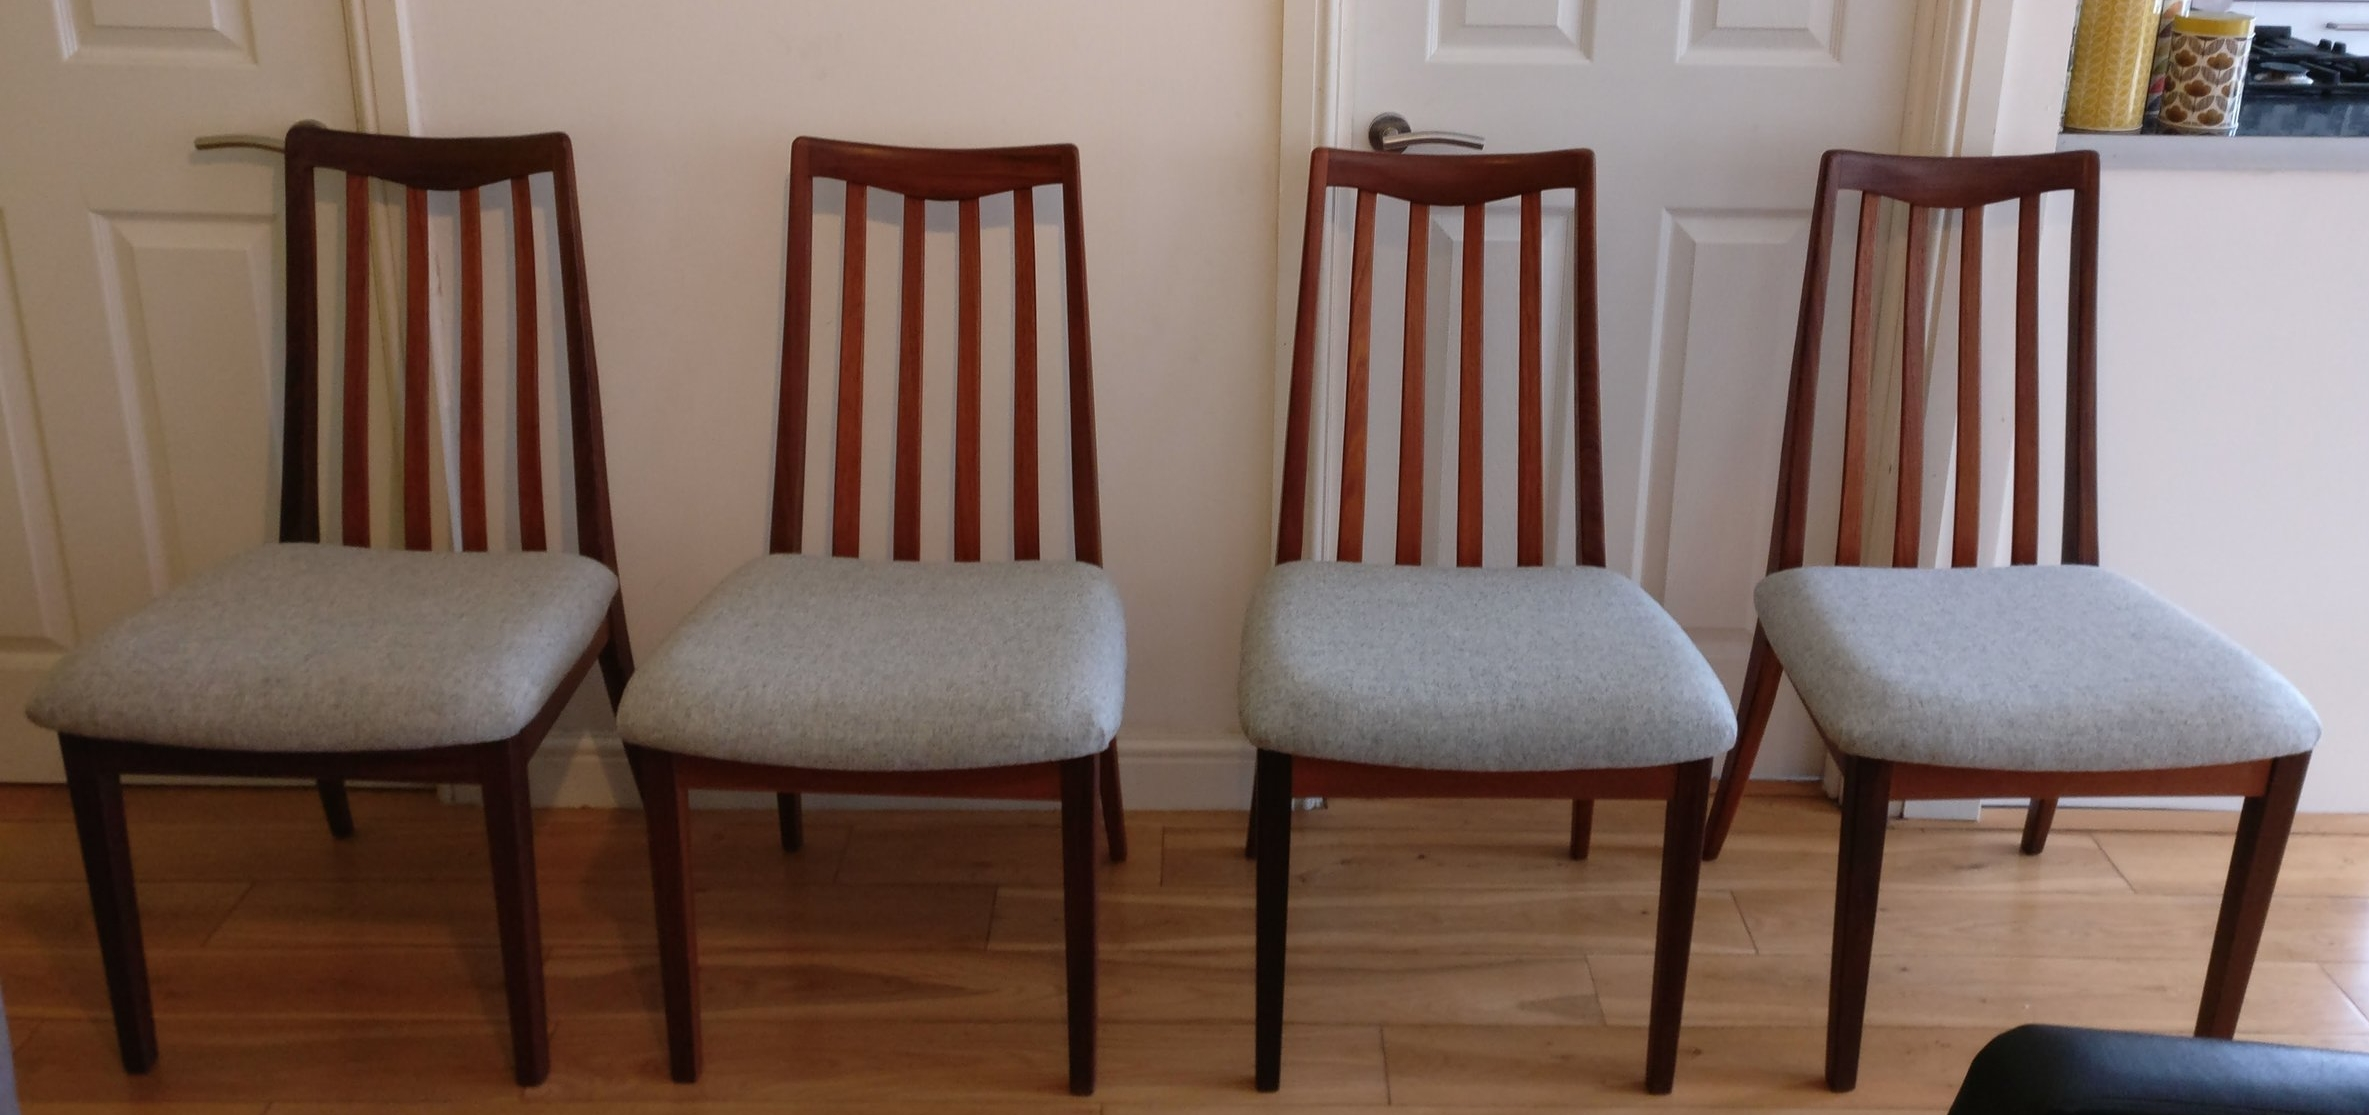 reupholster dining chairs high back upholstered chair for sale 4 reupholstered g plan grist twine